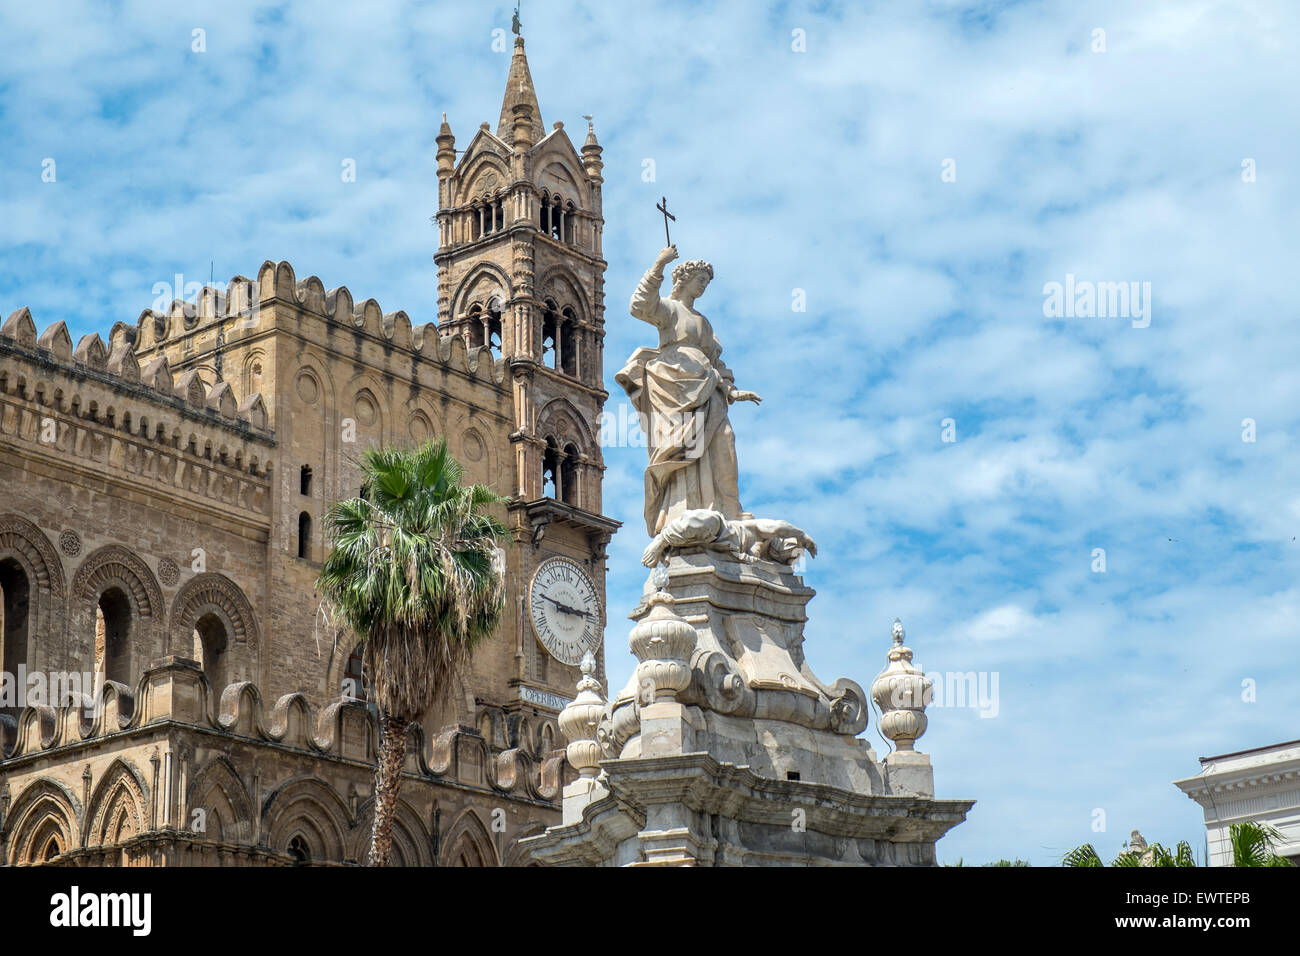 The Cathedral in Palermo, Sicily. - Stock Image